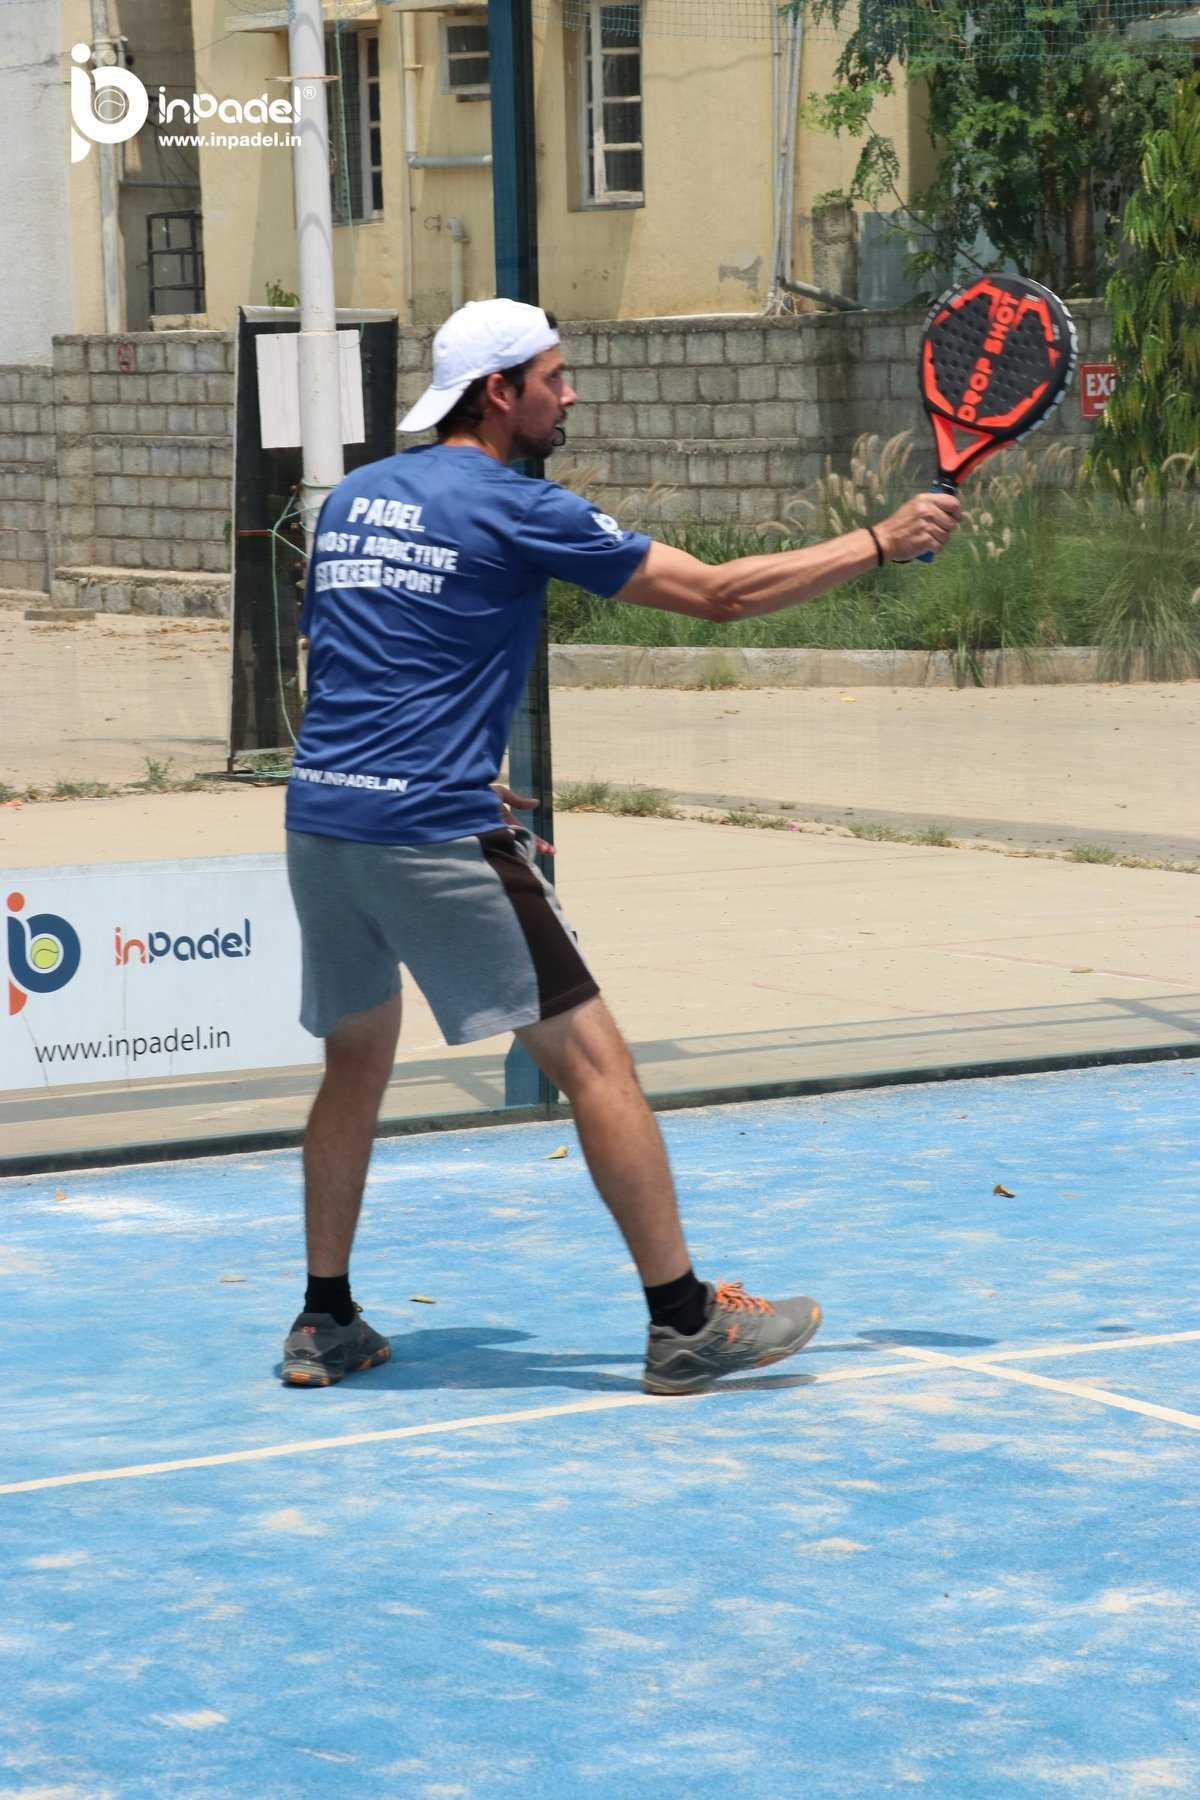 InPadel 1Yr Celebration of Padel in INDIA - Padel - Padel India (41)